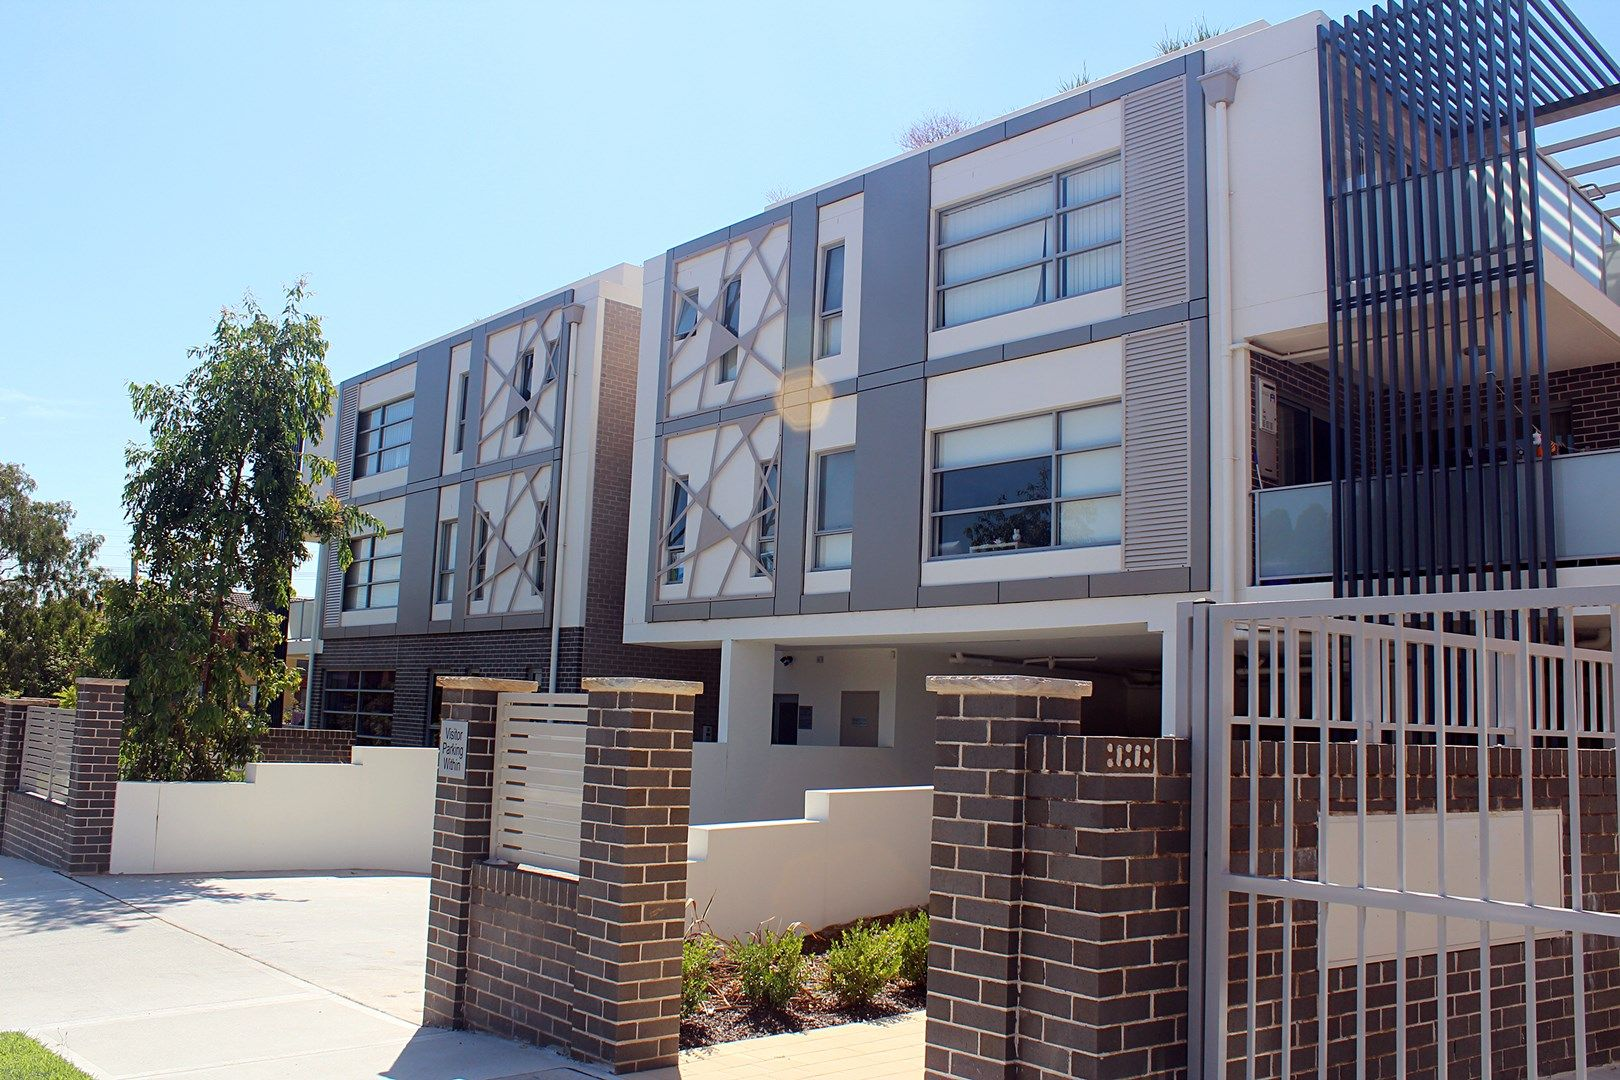 19/548 Liverpool Rd, Strathfield NSW 2135, Image 0